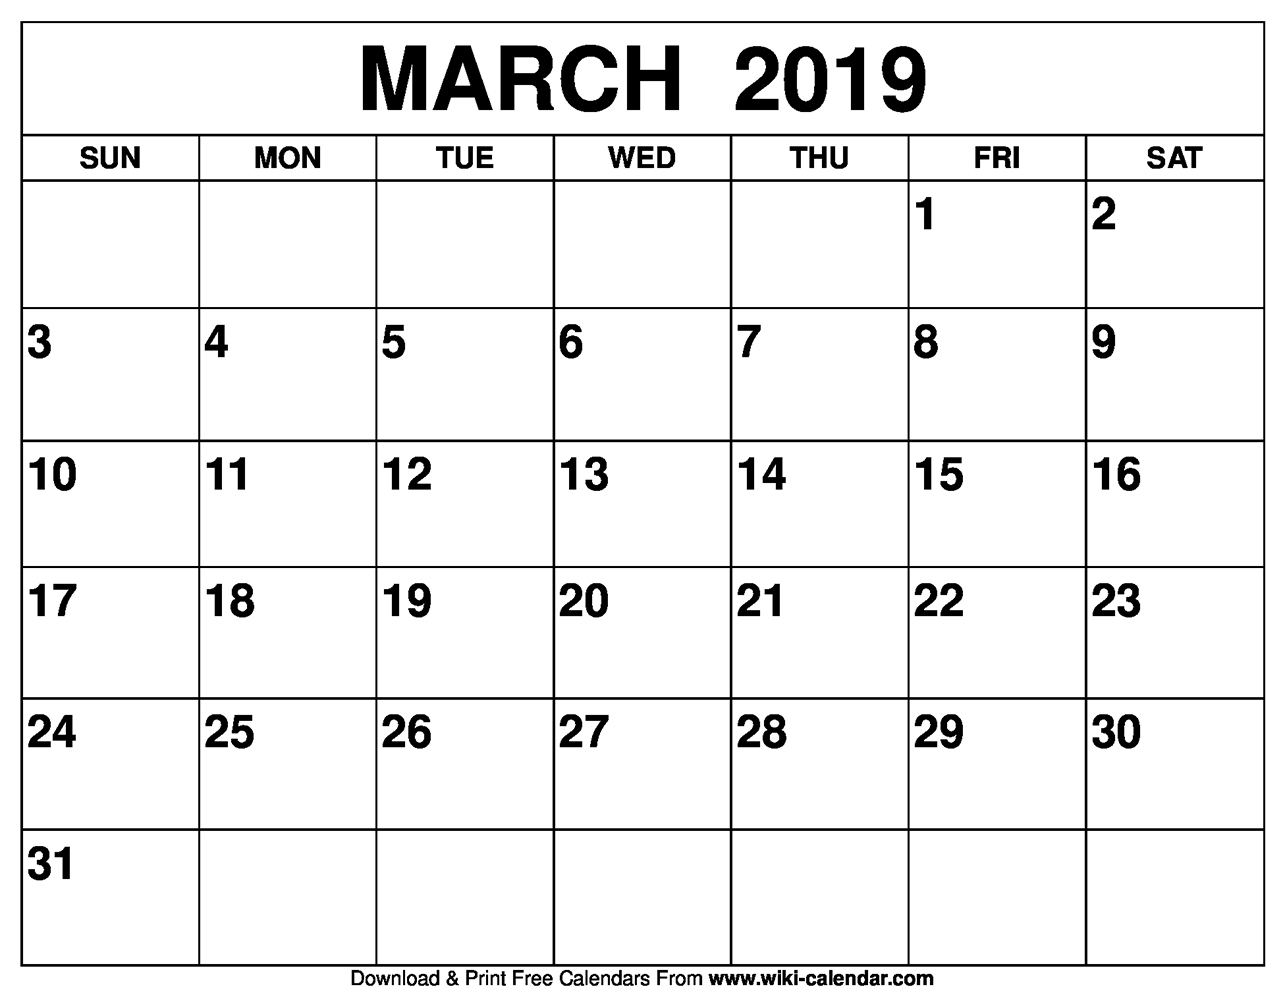 Printable March 2019 Calendar - Free Printable Calendar Templates in Pretty Calendar Template Printable March